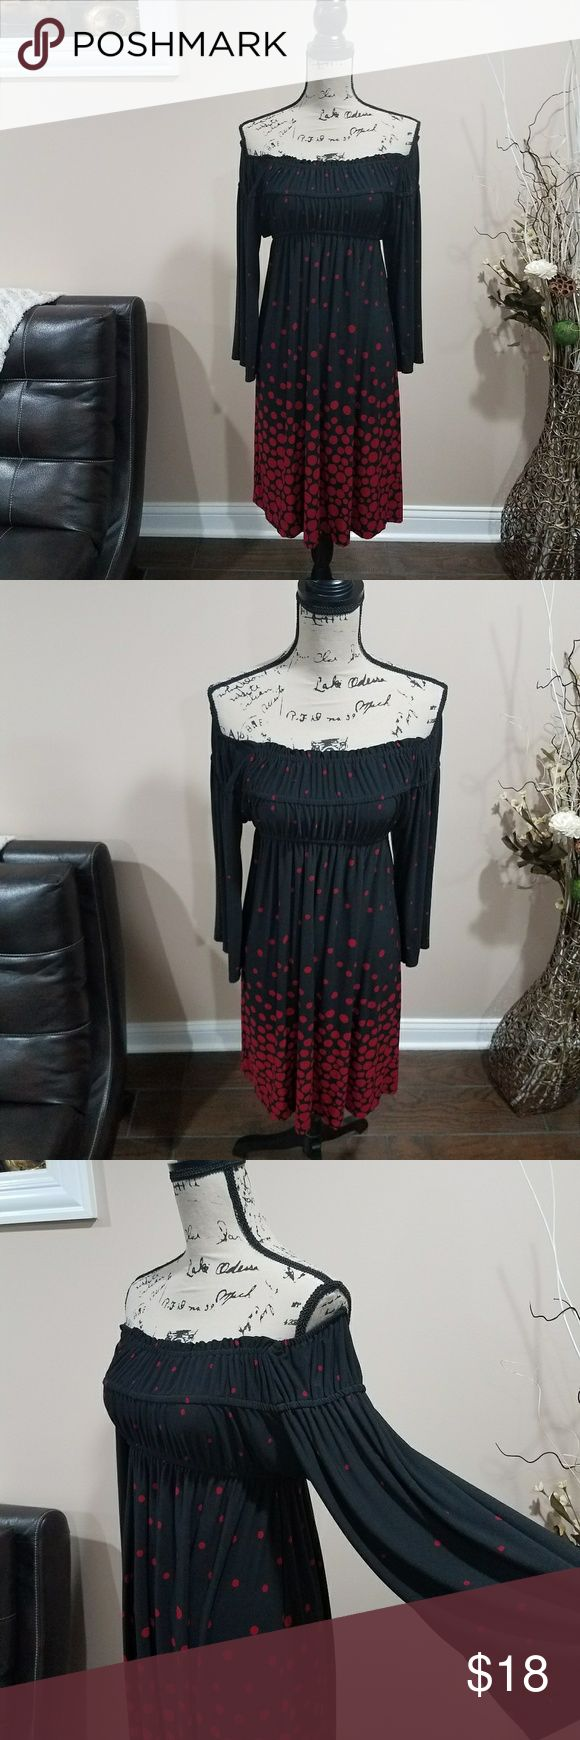 """Tiana B. Dress Tiana B. Dress (Size M/Lightly Used) 34"""" length  38"""" chest  OFFERS Accepted  Reference Item No: 35  The Outfit Is Not Complete Until You Smile! Tiana B. Dresses"""